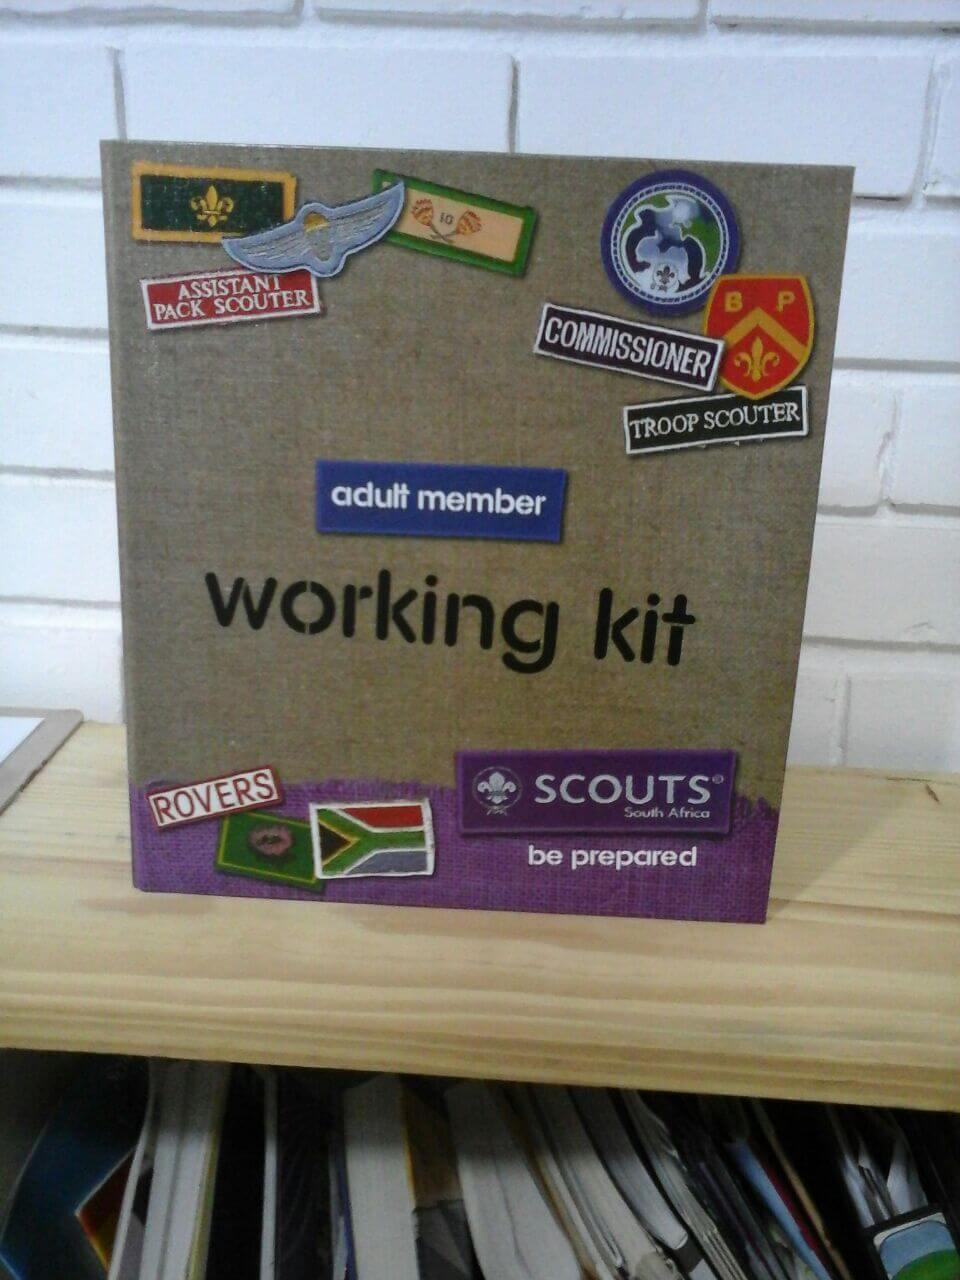 adult member - working kit